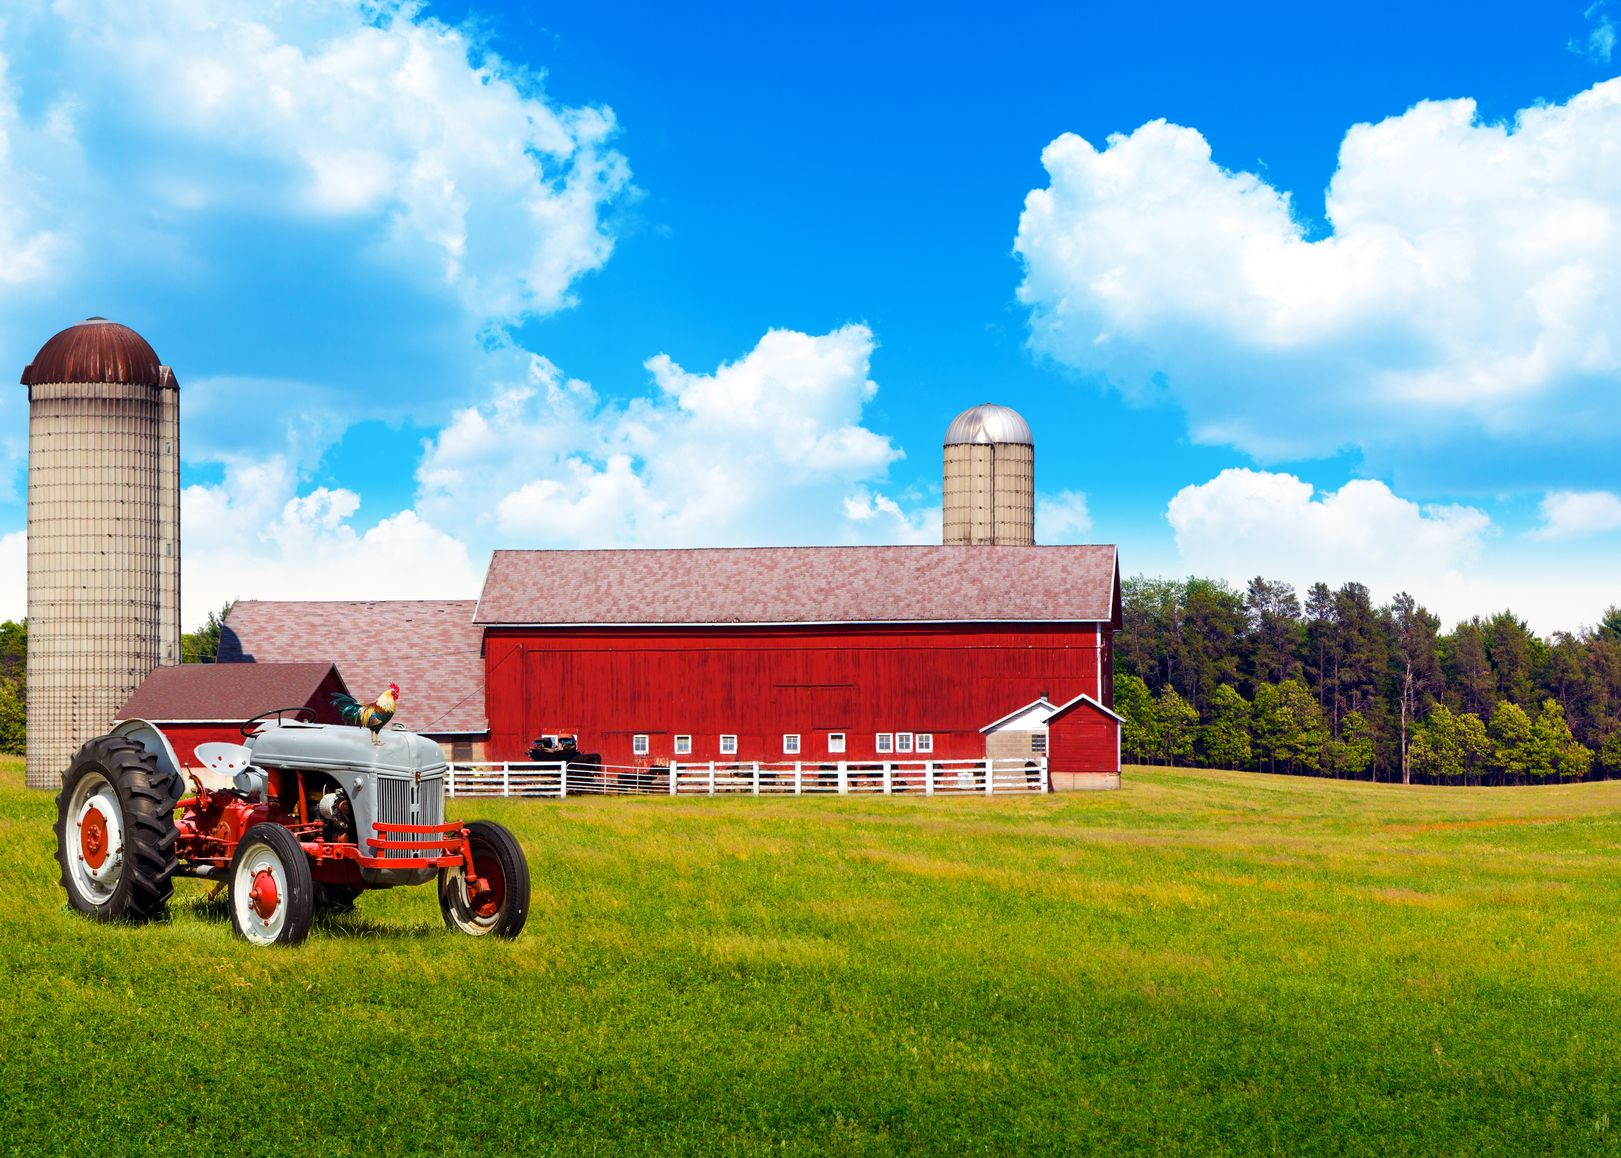 Boulder, Denver, CO. Farm & Ranch Insurance